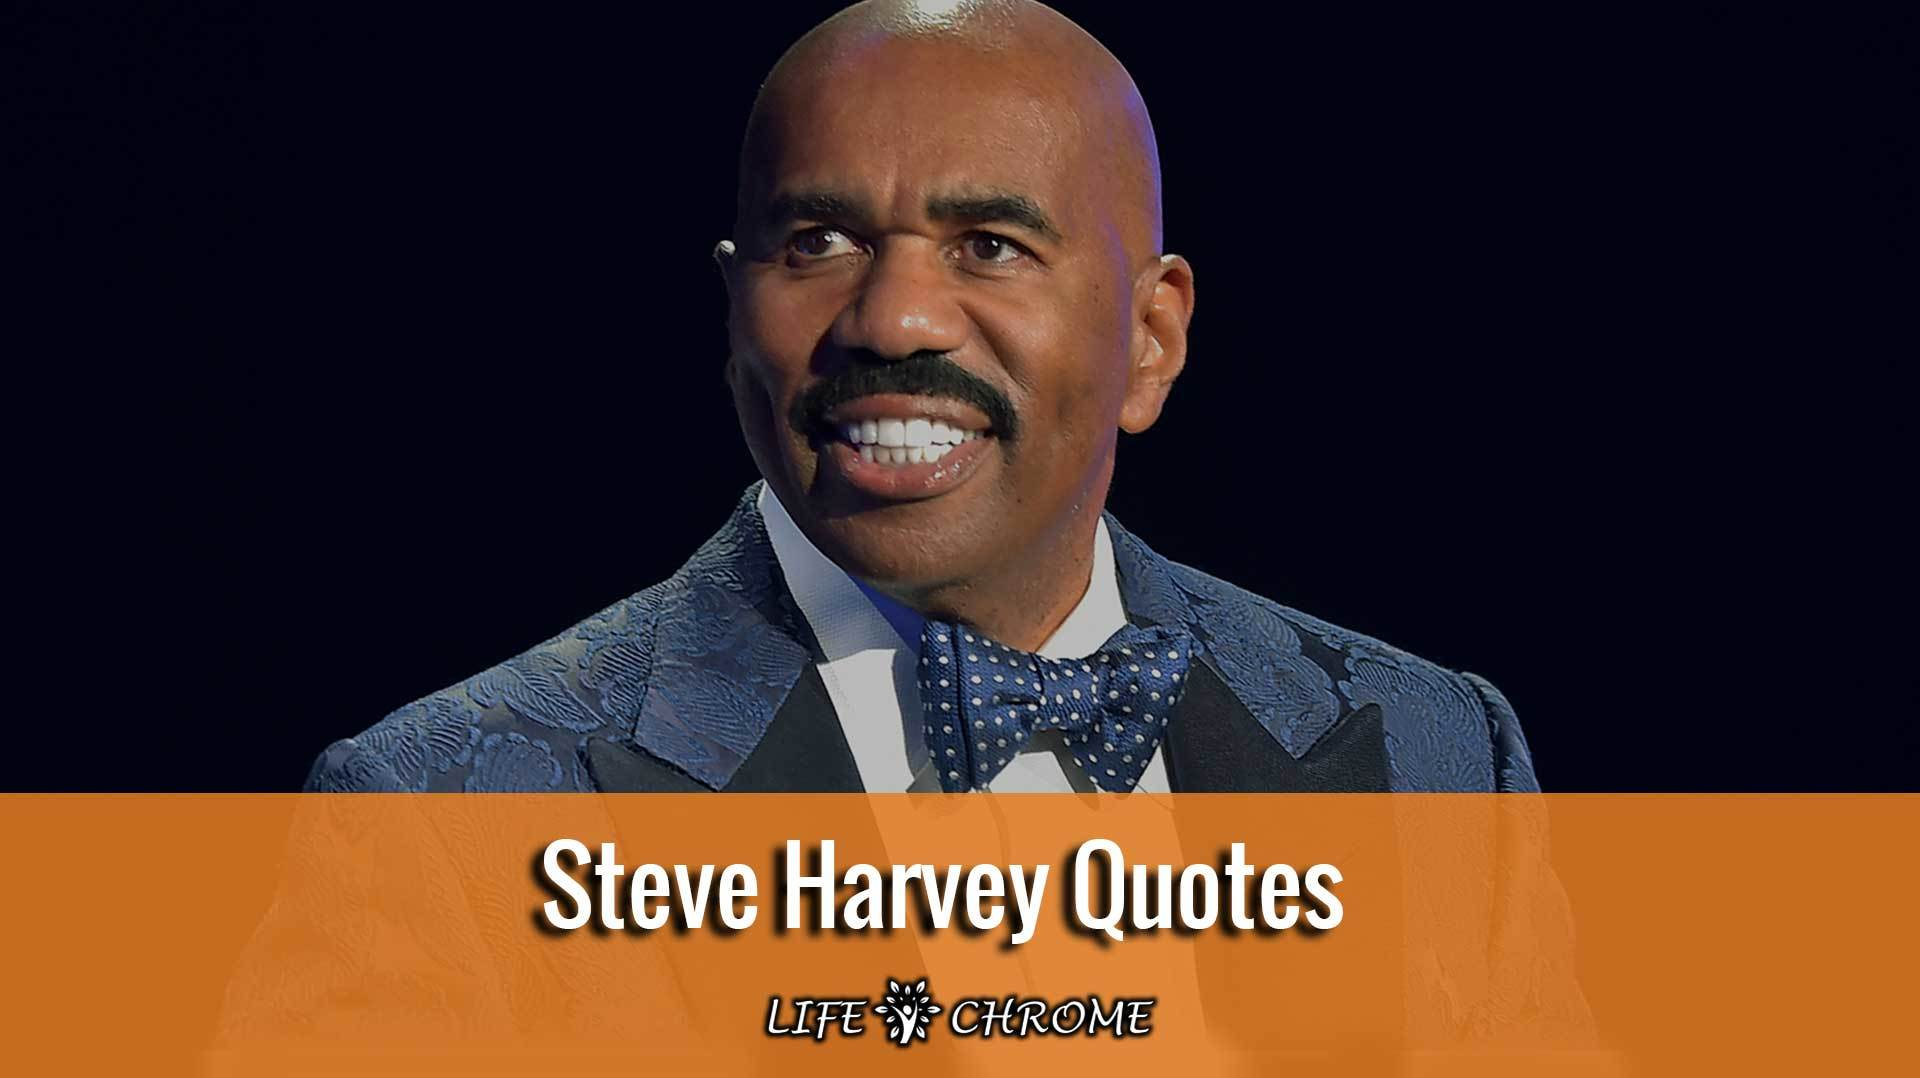 Steve Harvey Quotes (Top 80) | Famous People\'s Quotes Series